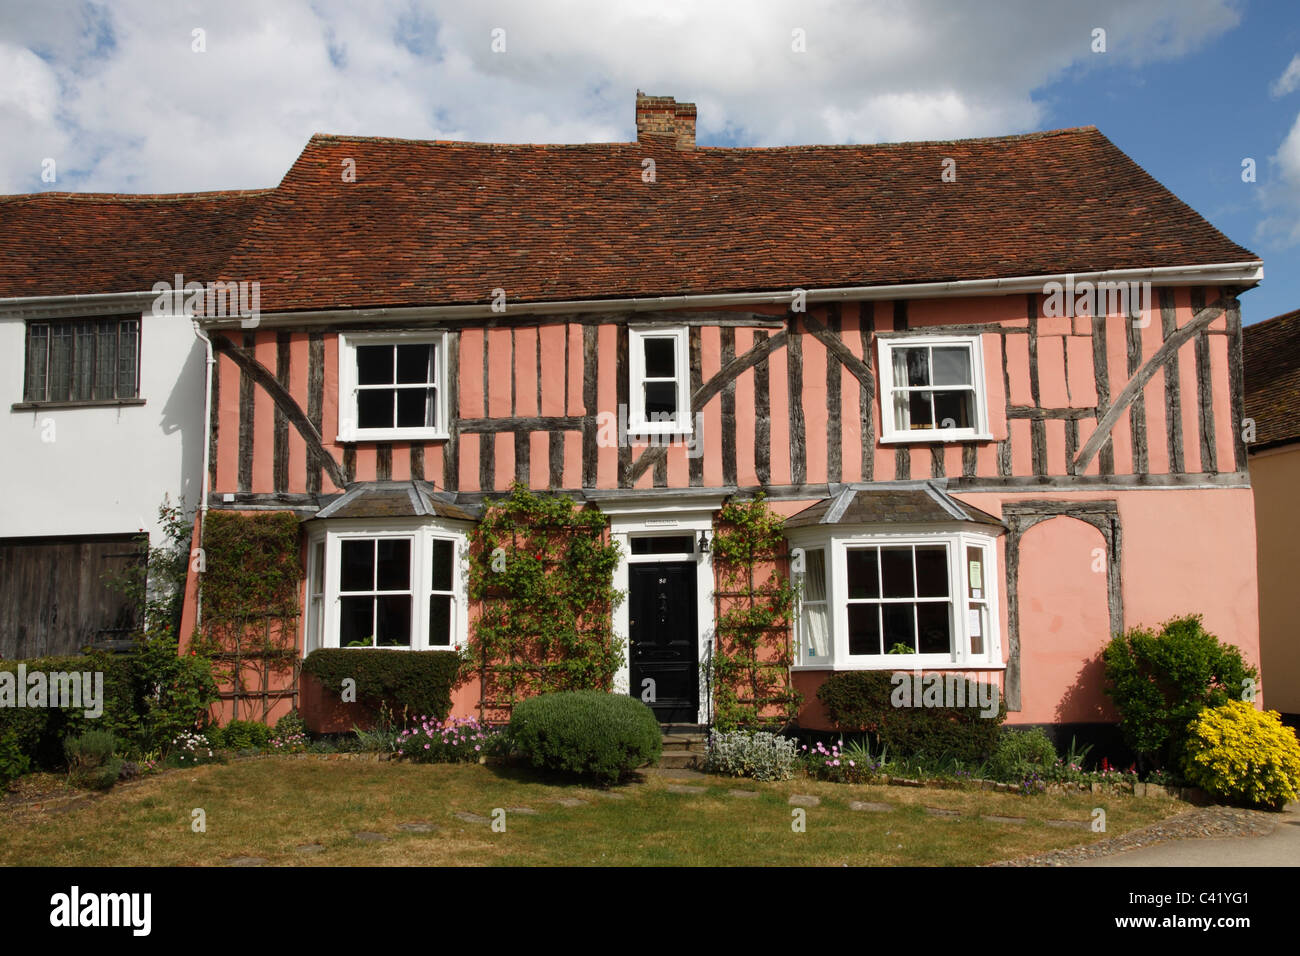 Timber-framed Cottage in Lavenham village Suffolk - Stock Image